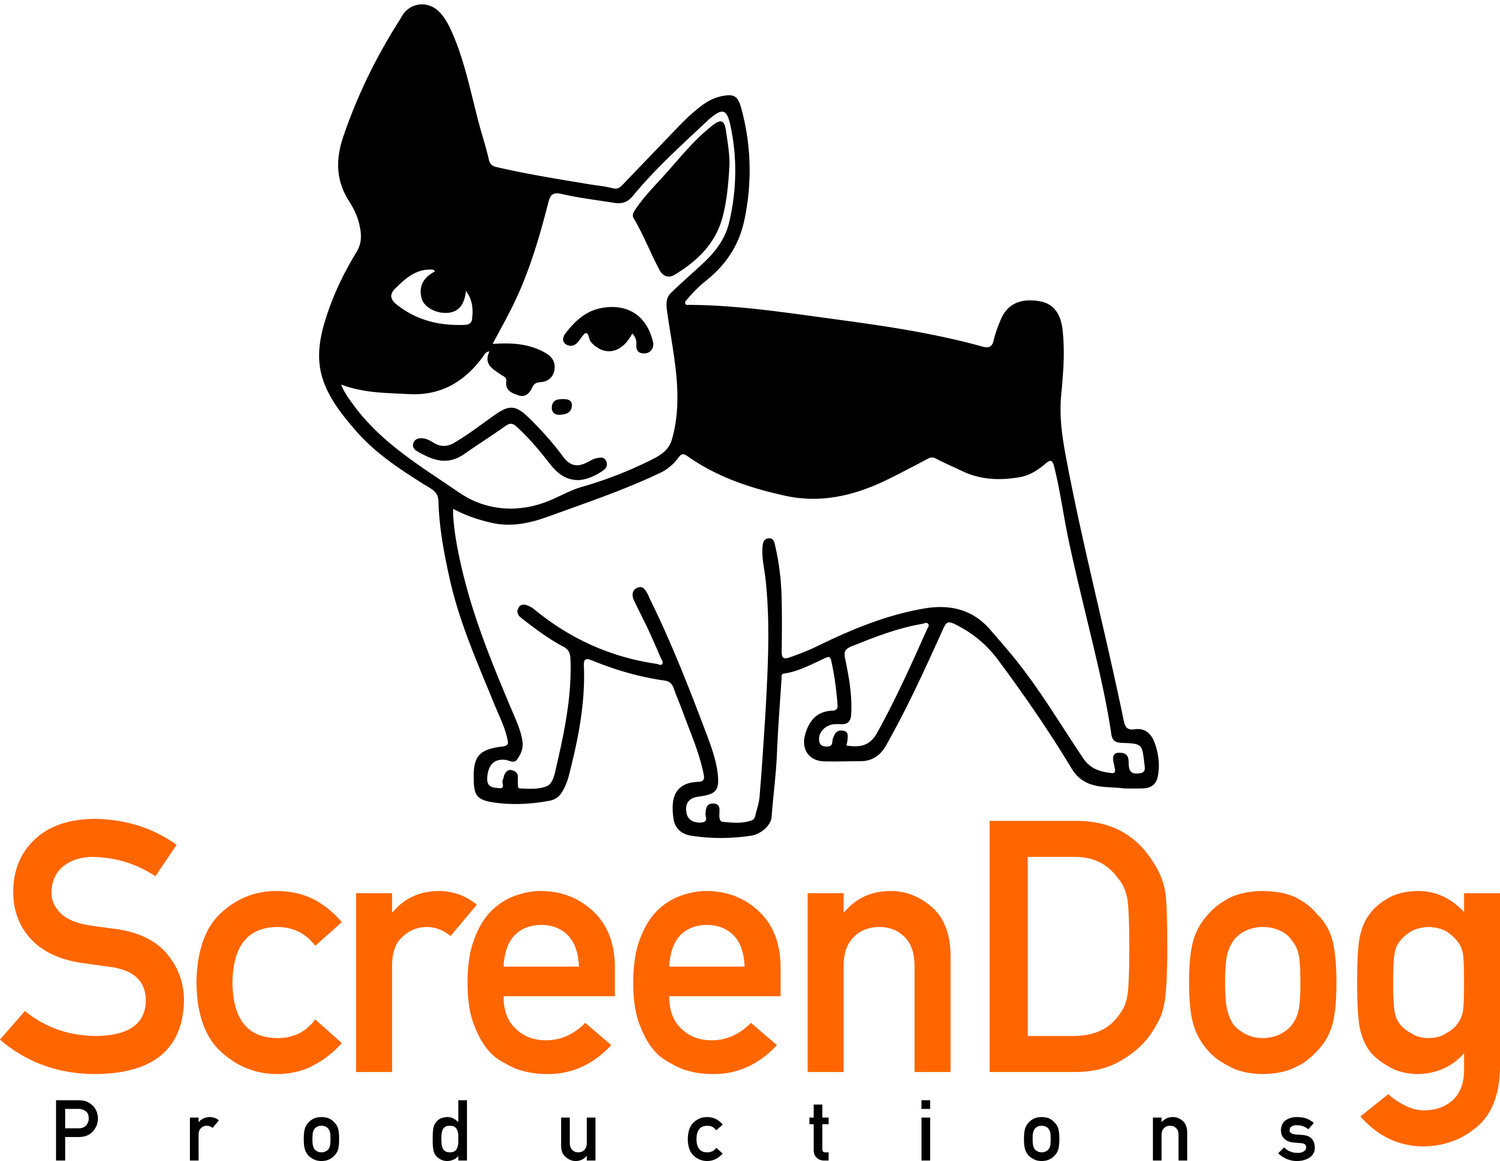 Screendog+Productions+Logo+(Orange).jpg